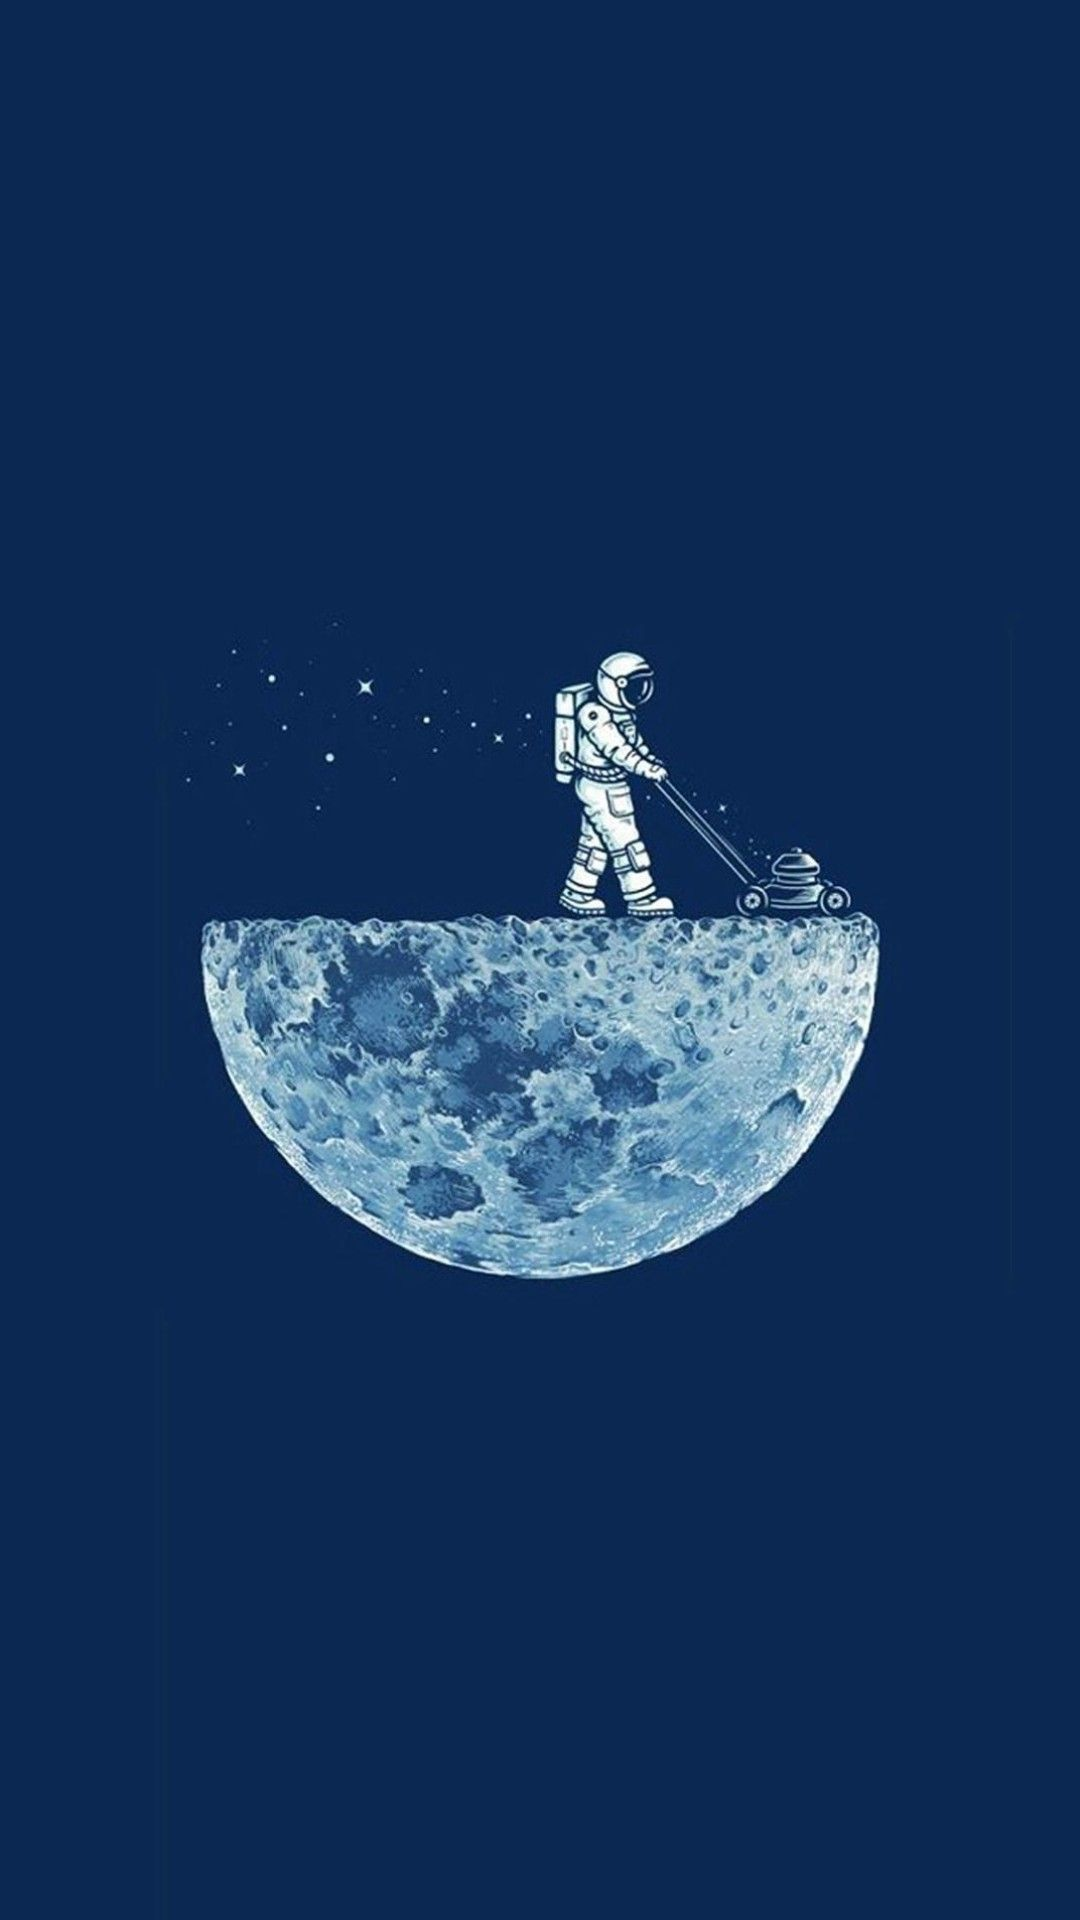 List of Cool Moon Phone Wallpaper HD 2020 by Uploaded by user